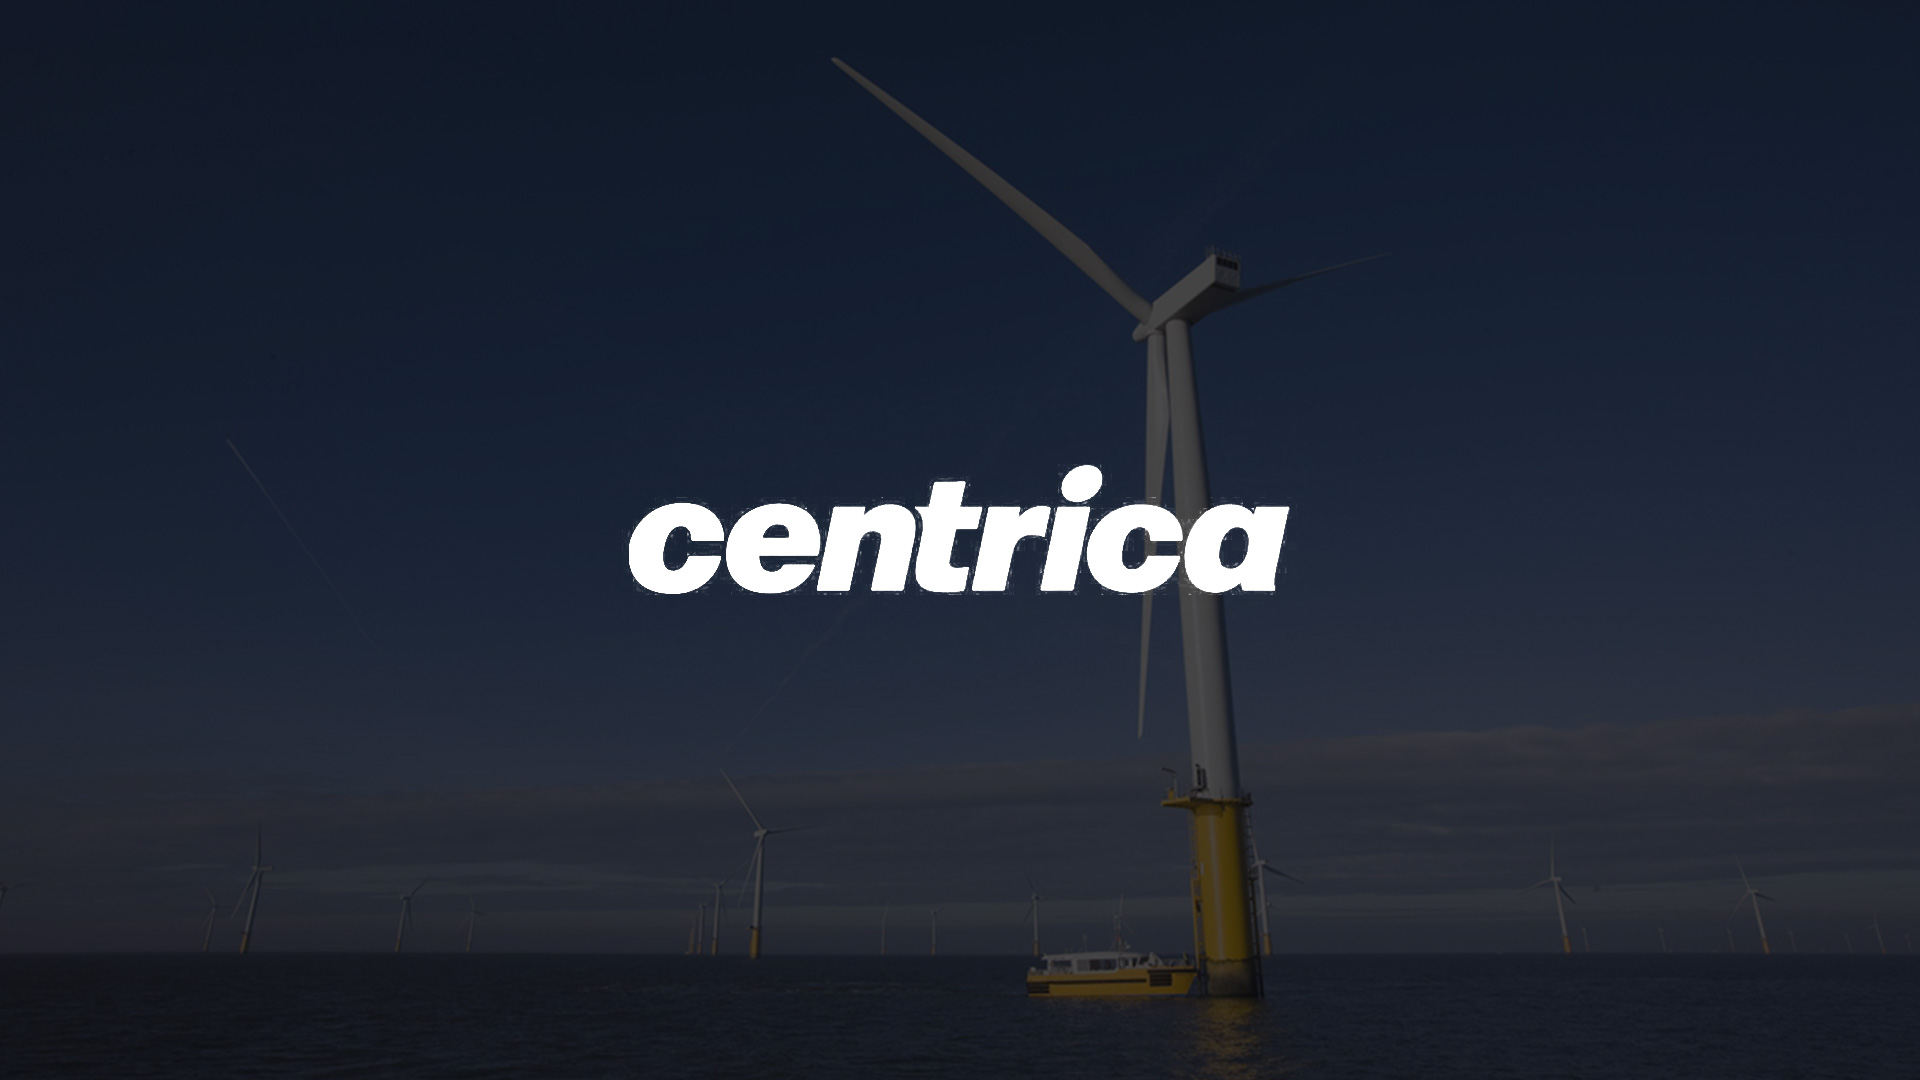 Centrica Wind Energy: Energy, Oil & Gas